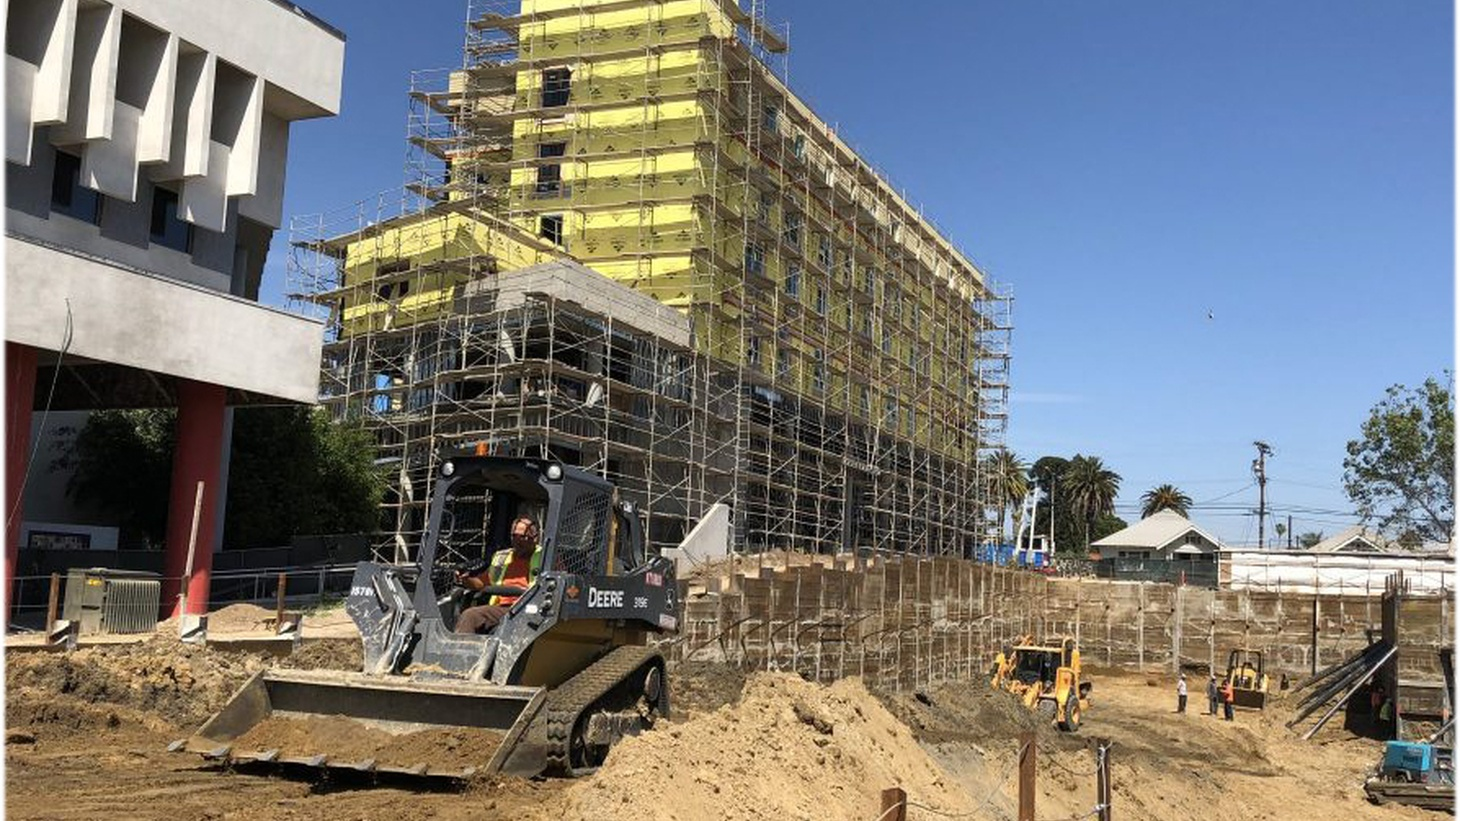 There are big and growing concerns about the speed and mushrooming costs of housing projects funded through HHH, problems that could threaten the ambitious housing goals of the program.